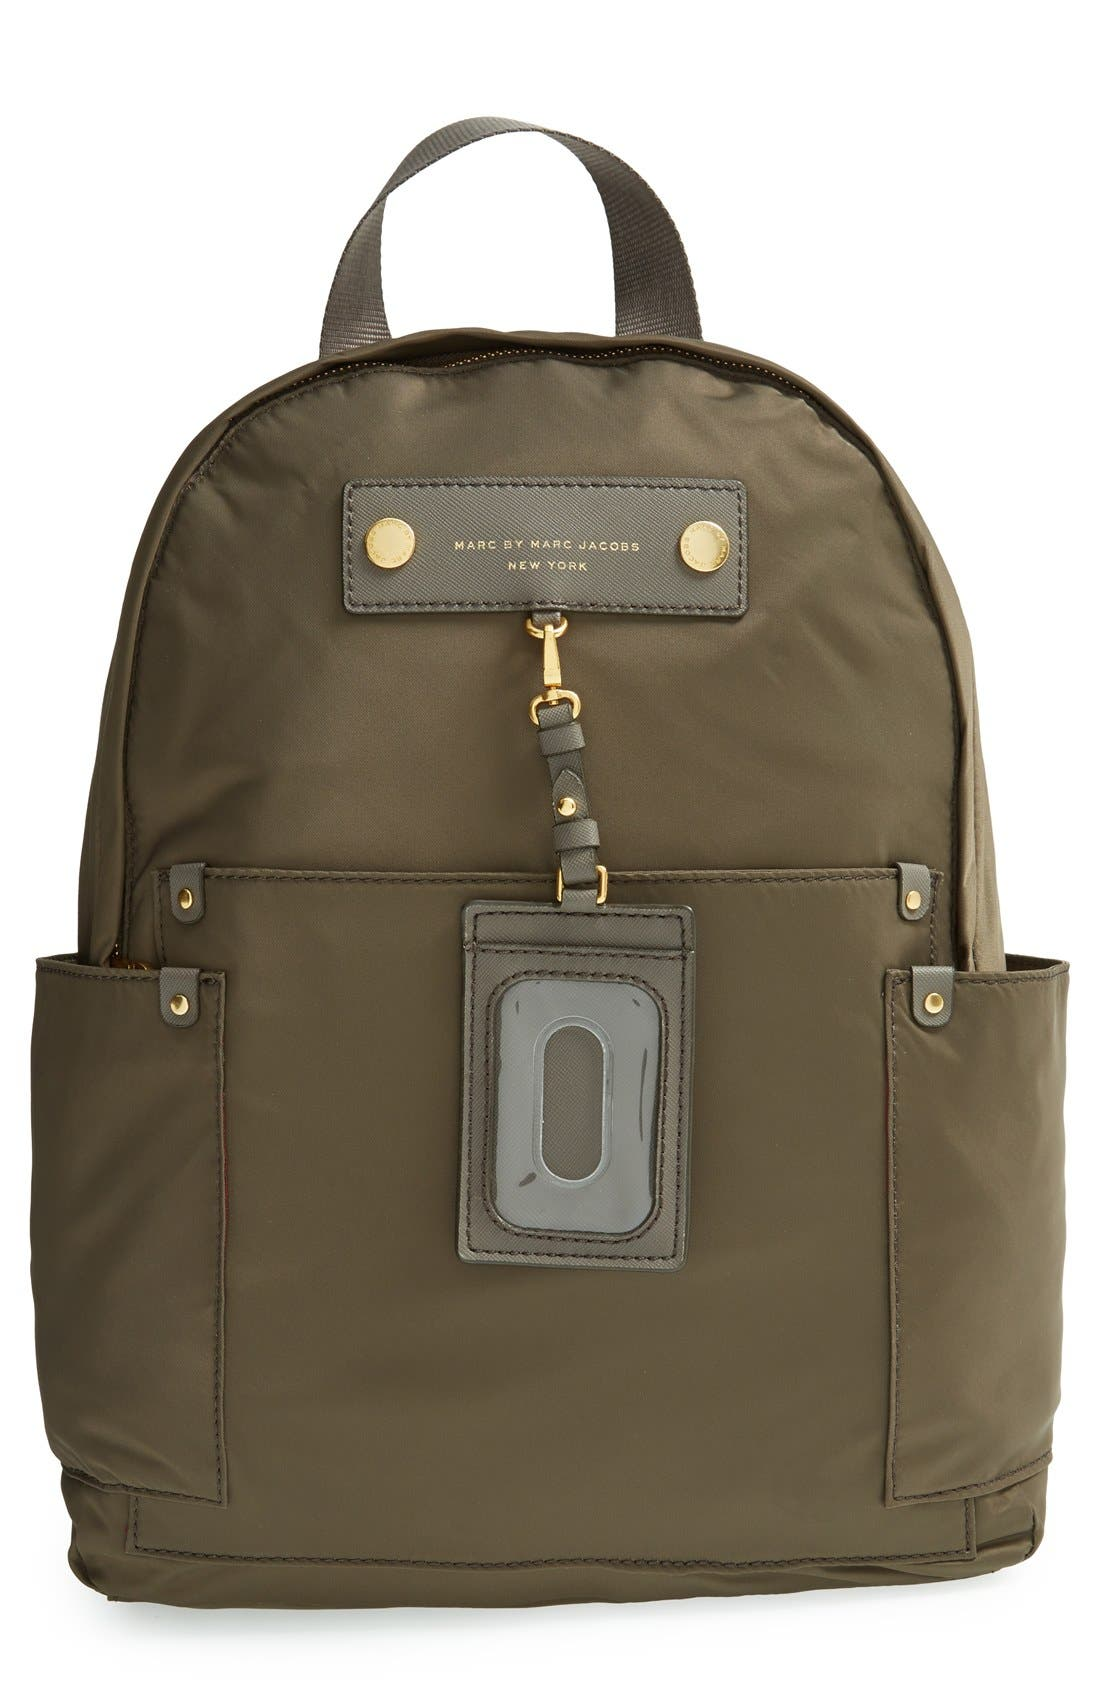 Main Image - MARC BY MARC JACOBS 'Preppy Nylon' Backpack